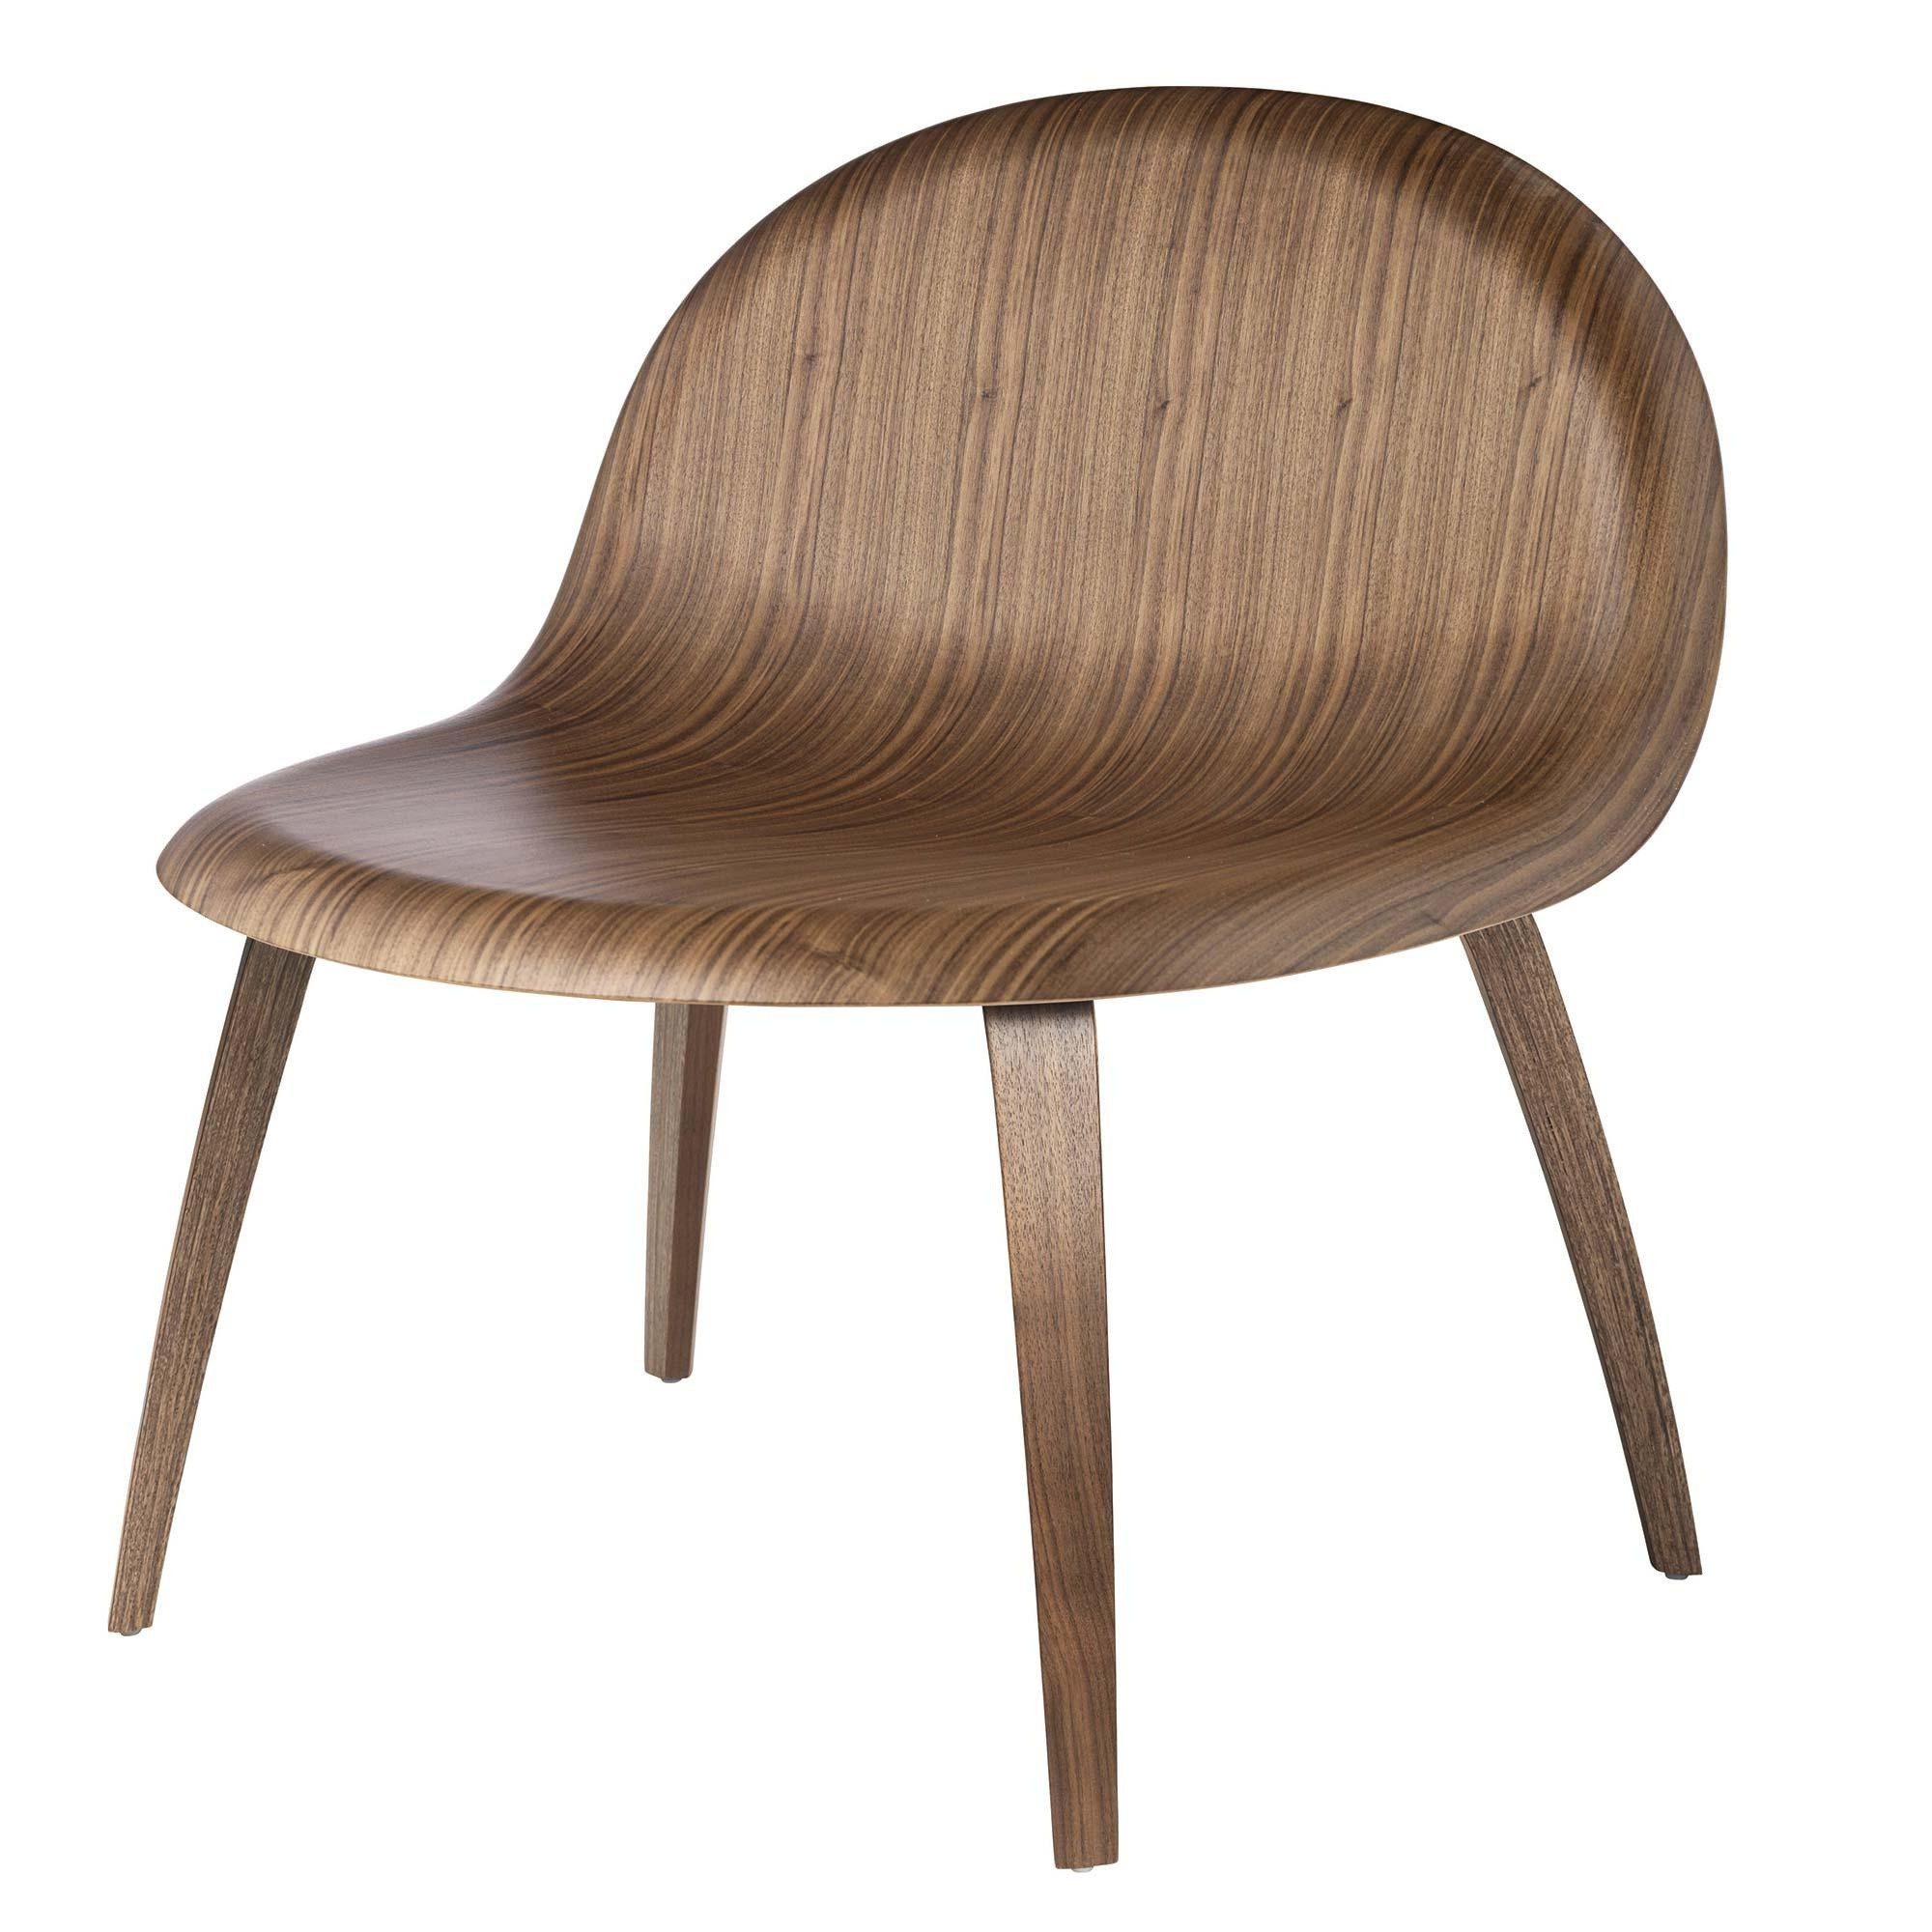 Gubi 3D Lounge Chair Sessel mit Holzgestell | AmbienteDirect